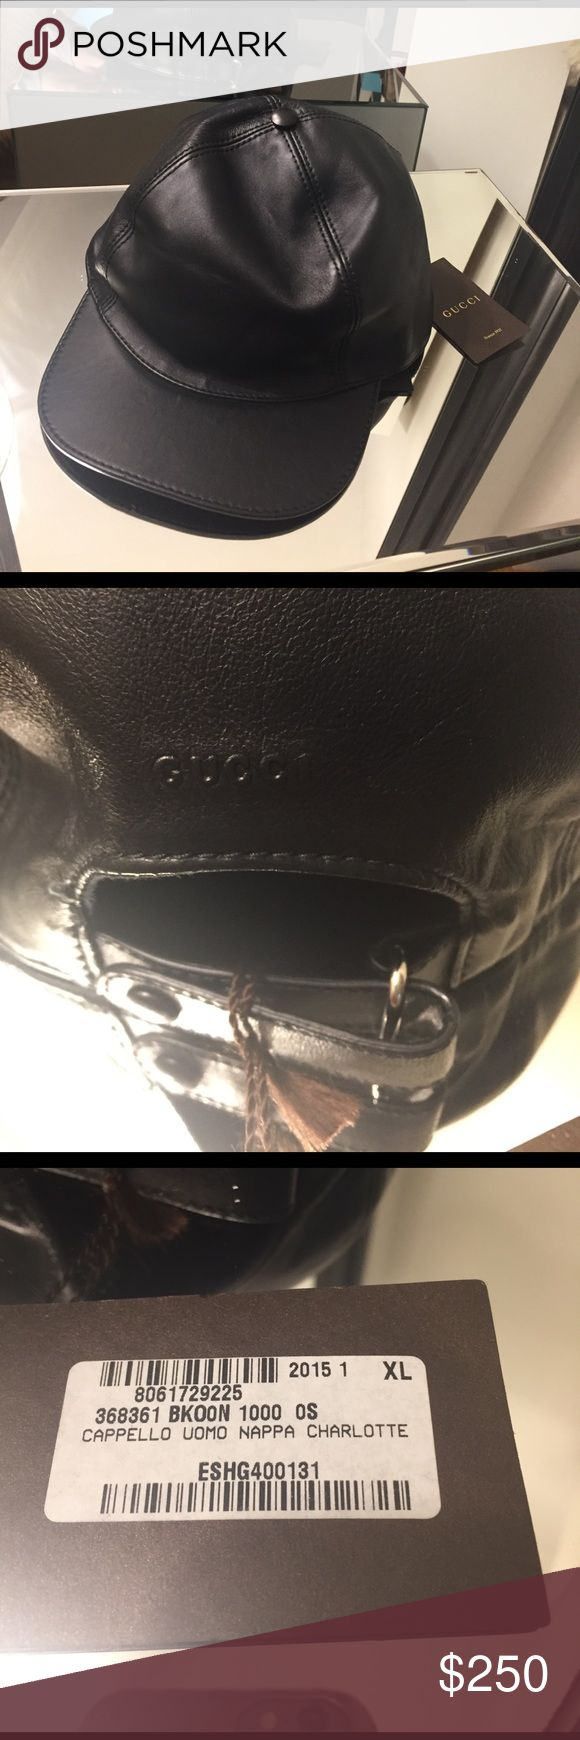 Gucci Leather Baseball Cap Black XL Gucci Nappa Leather Baseball Cap. New with tag. Made in Italy. Size XL. From 2015 collection. Black Nappa Leather with adjustable strap in back. Comes with White and black Gucci shopping bag. Gucci Accessories Hats